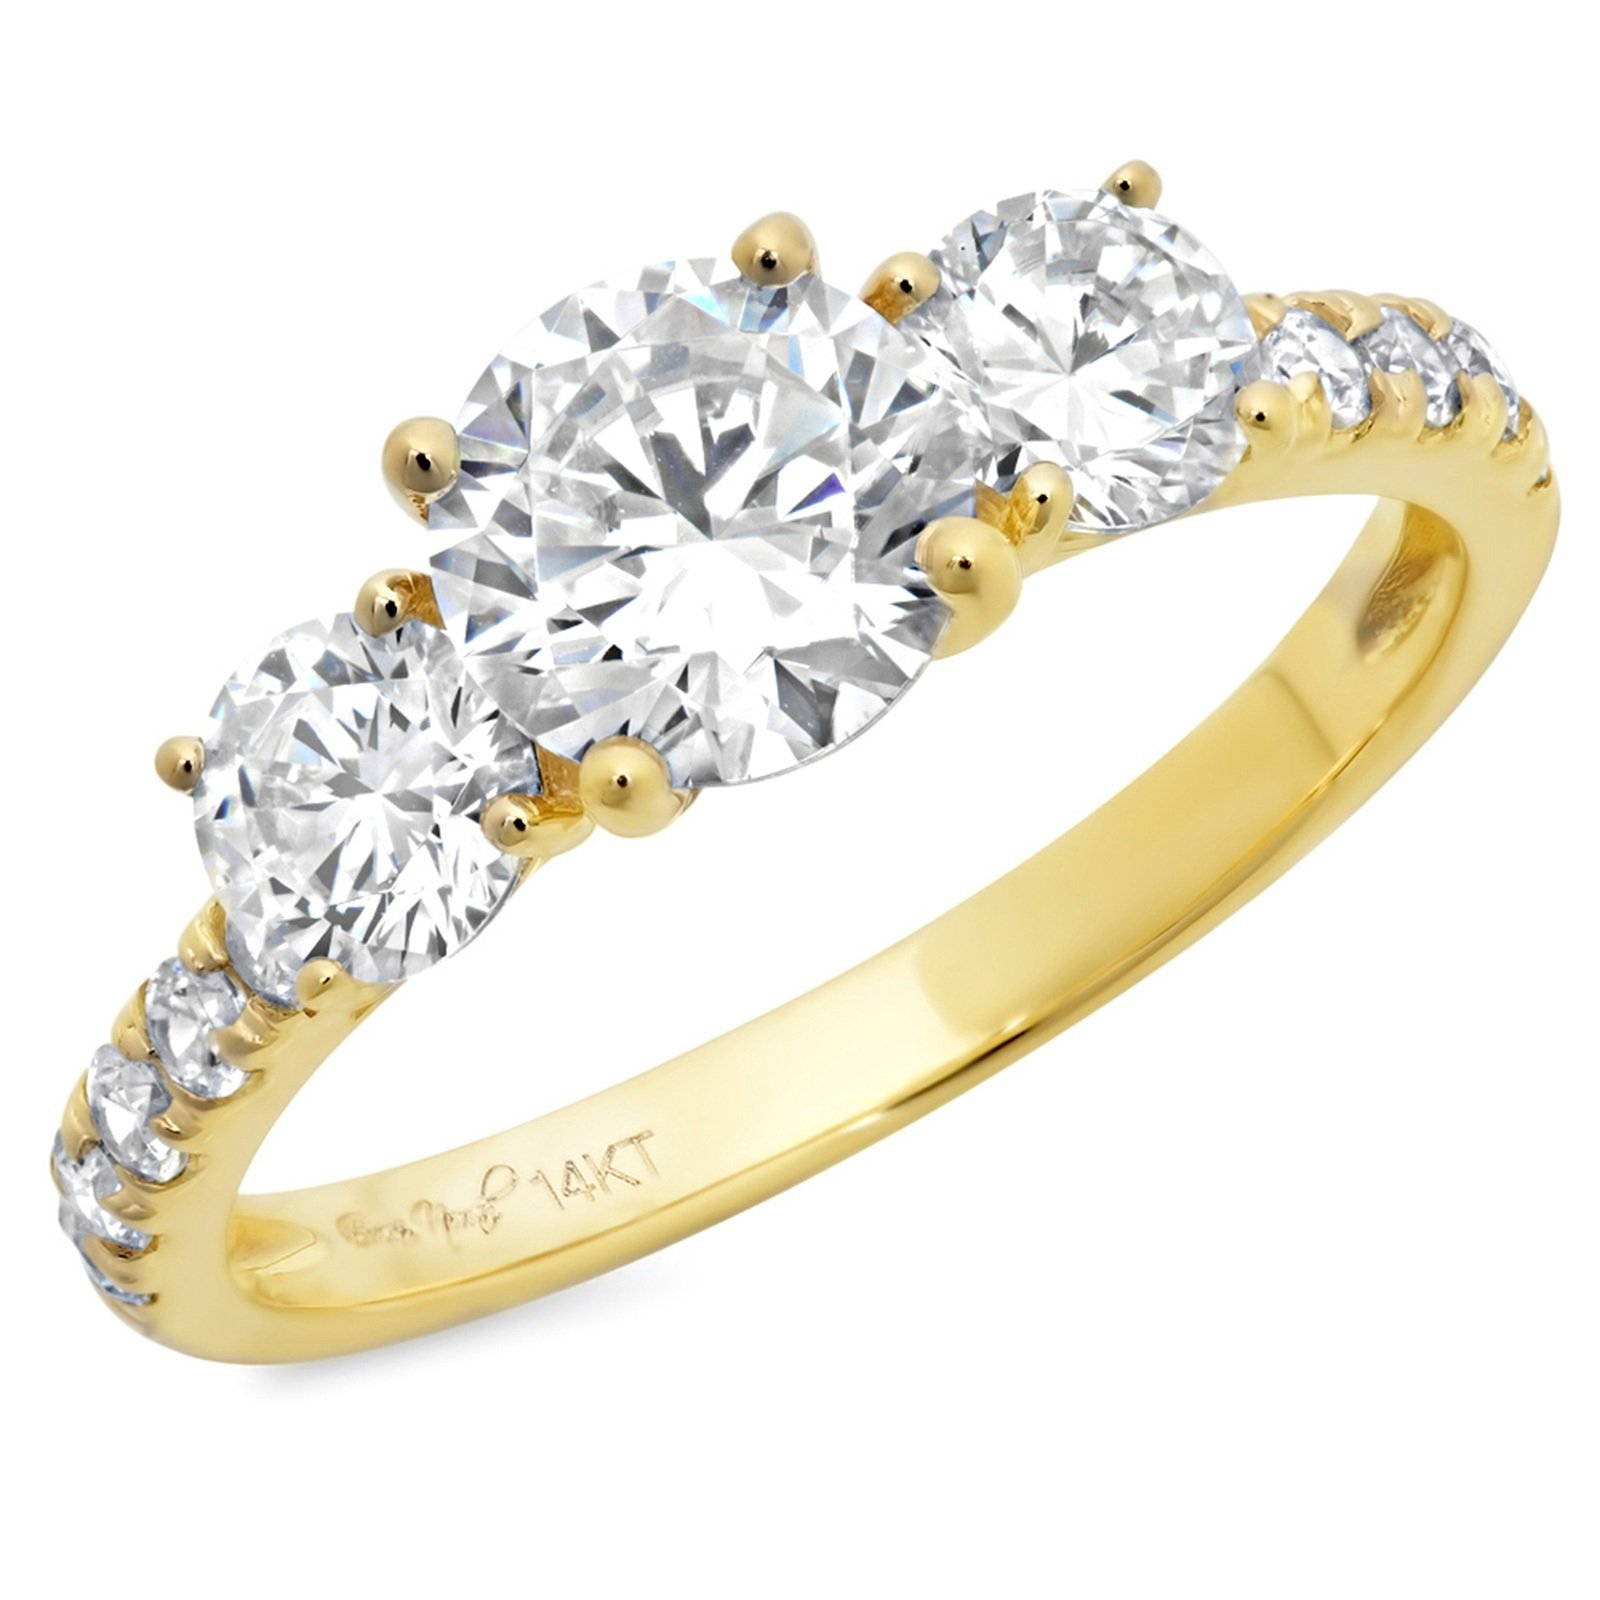 2.2 Ct Round Cut Pave Three Stone Accent Bridal Anniversary Engagement Wedding Band Ring 14K Yellow Gold, Size 5.5, Clara Pucci